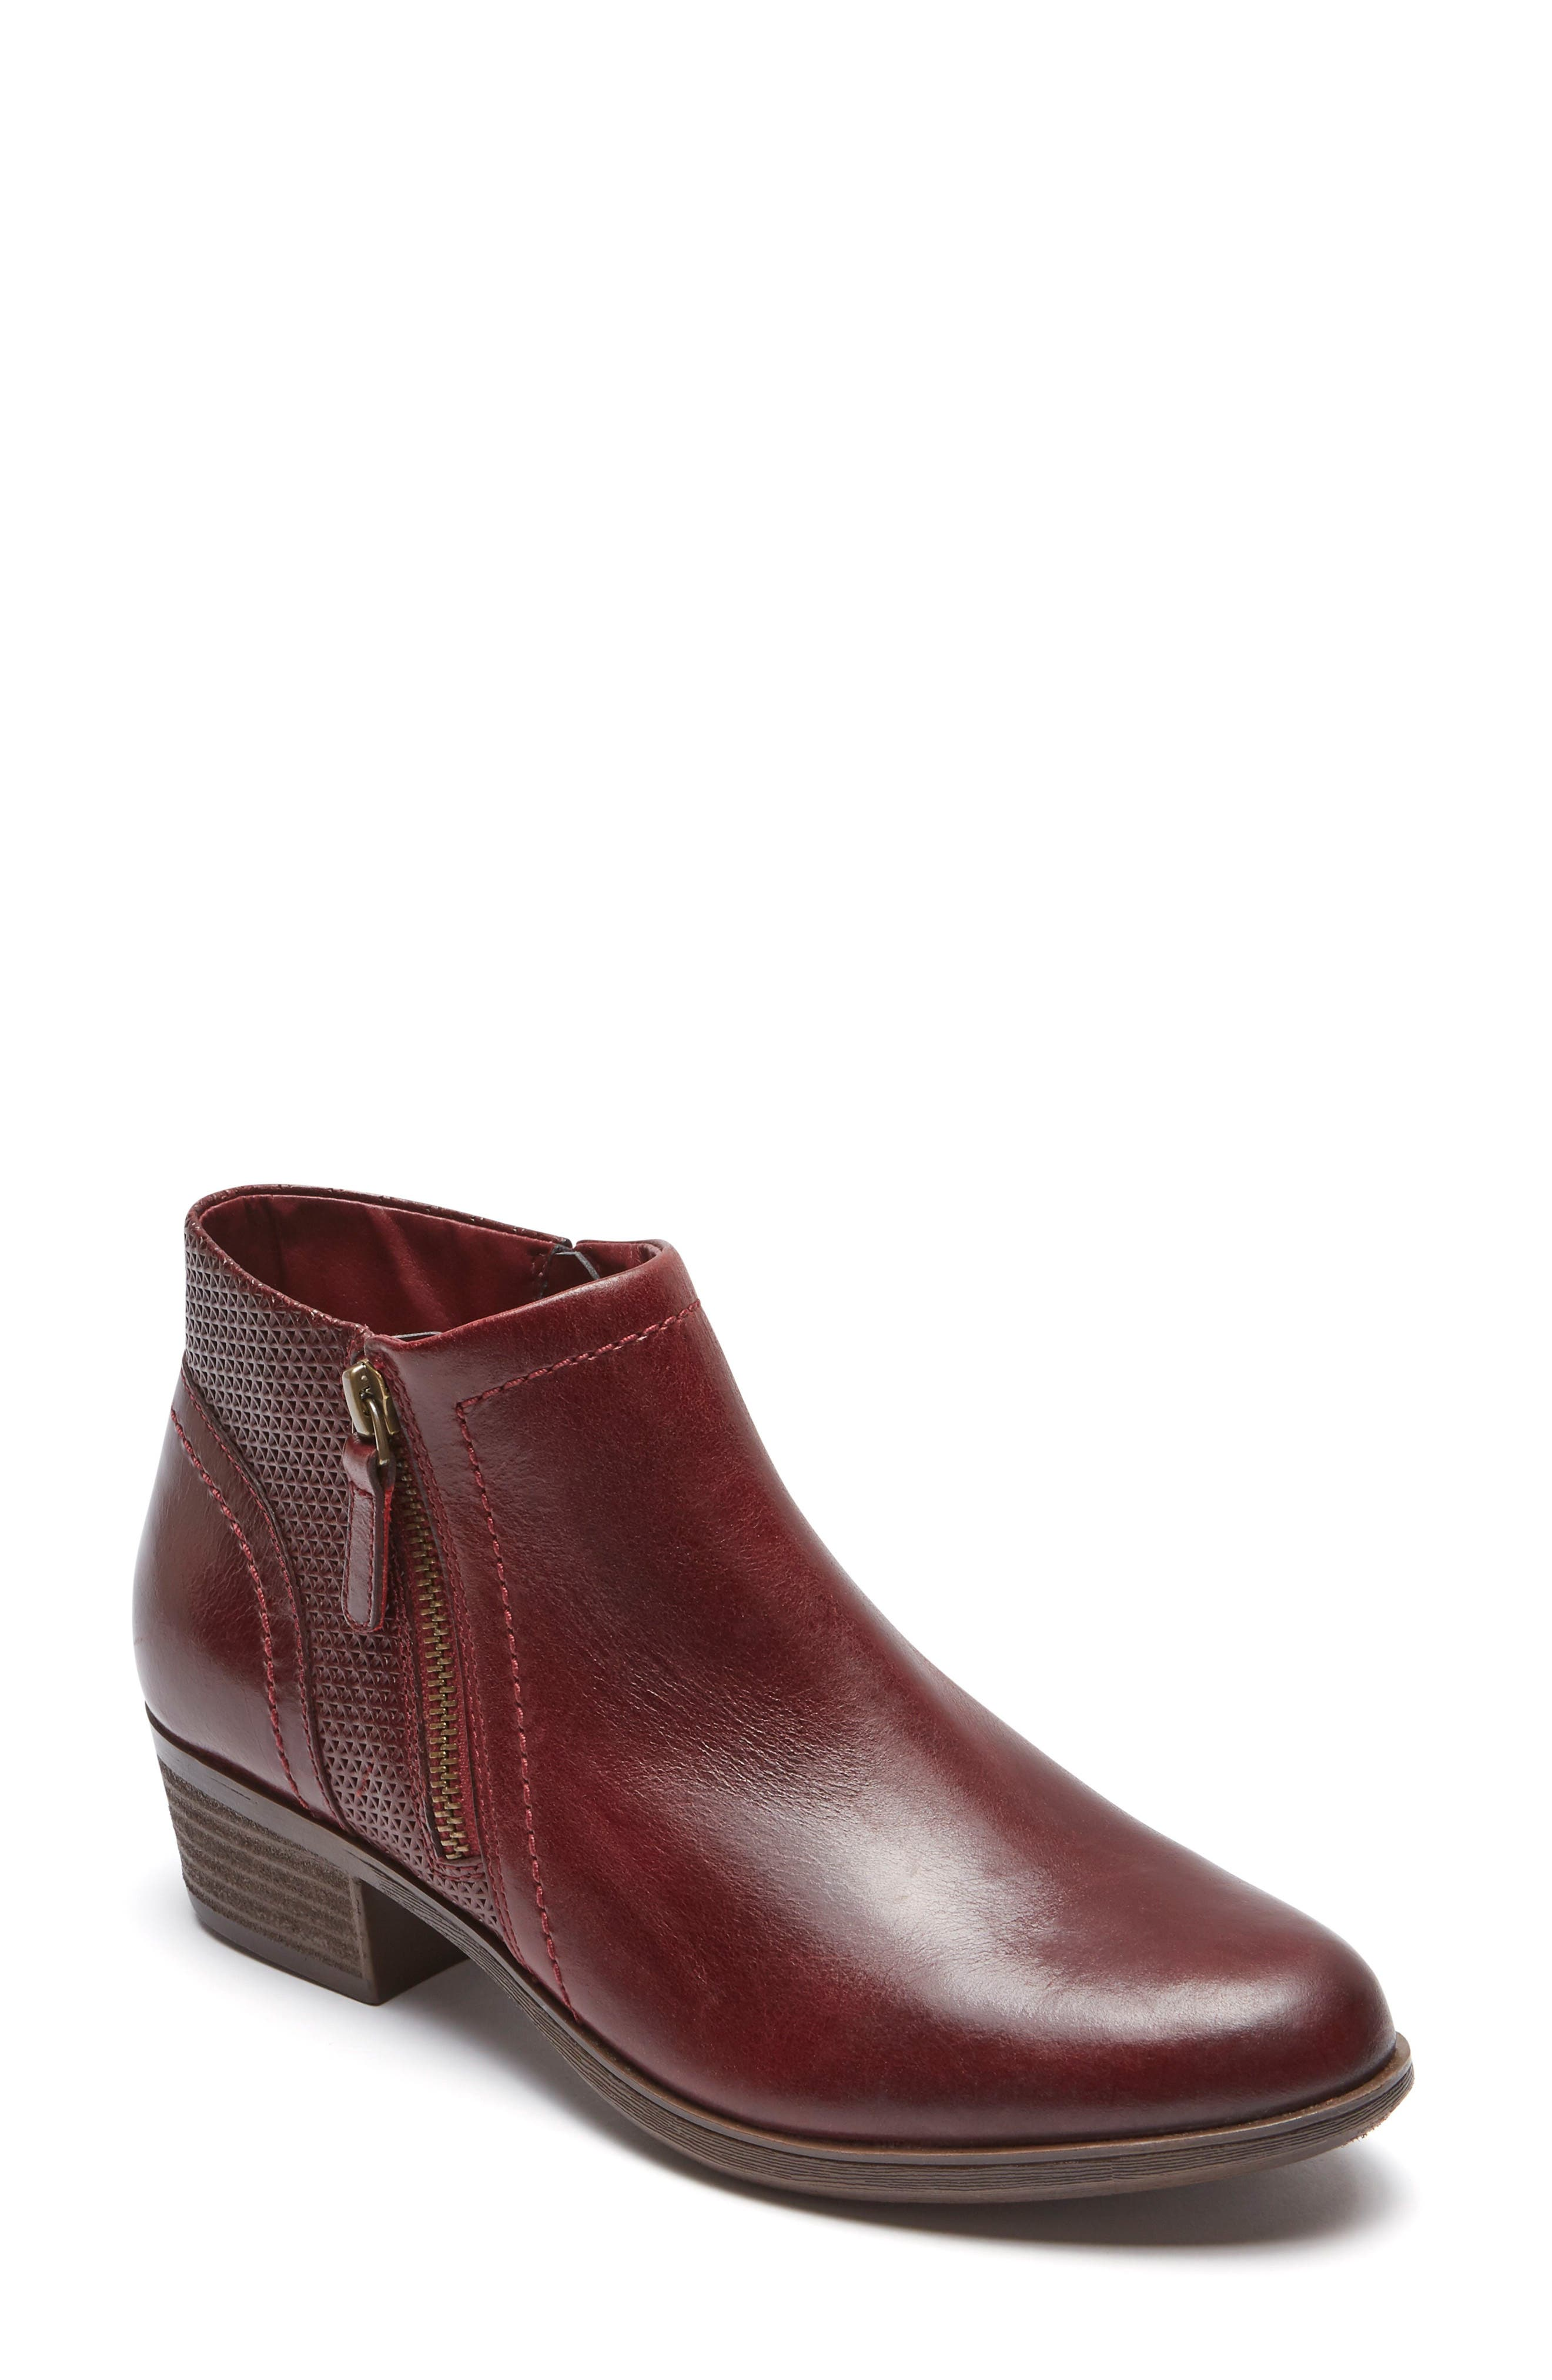 Oliana Bootie,                         Main,                         color, Inferno Leather